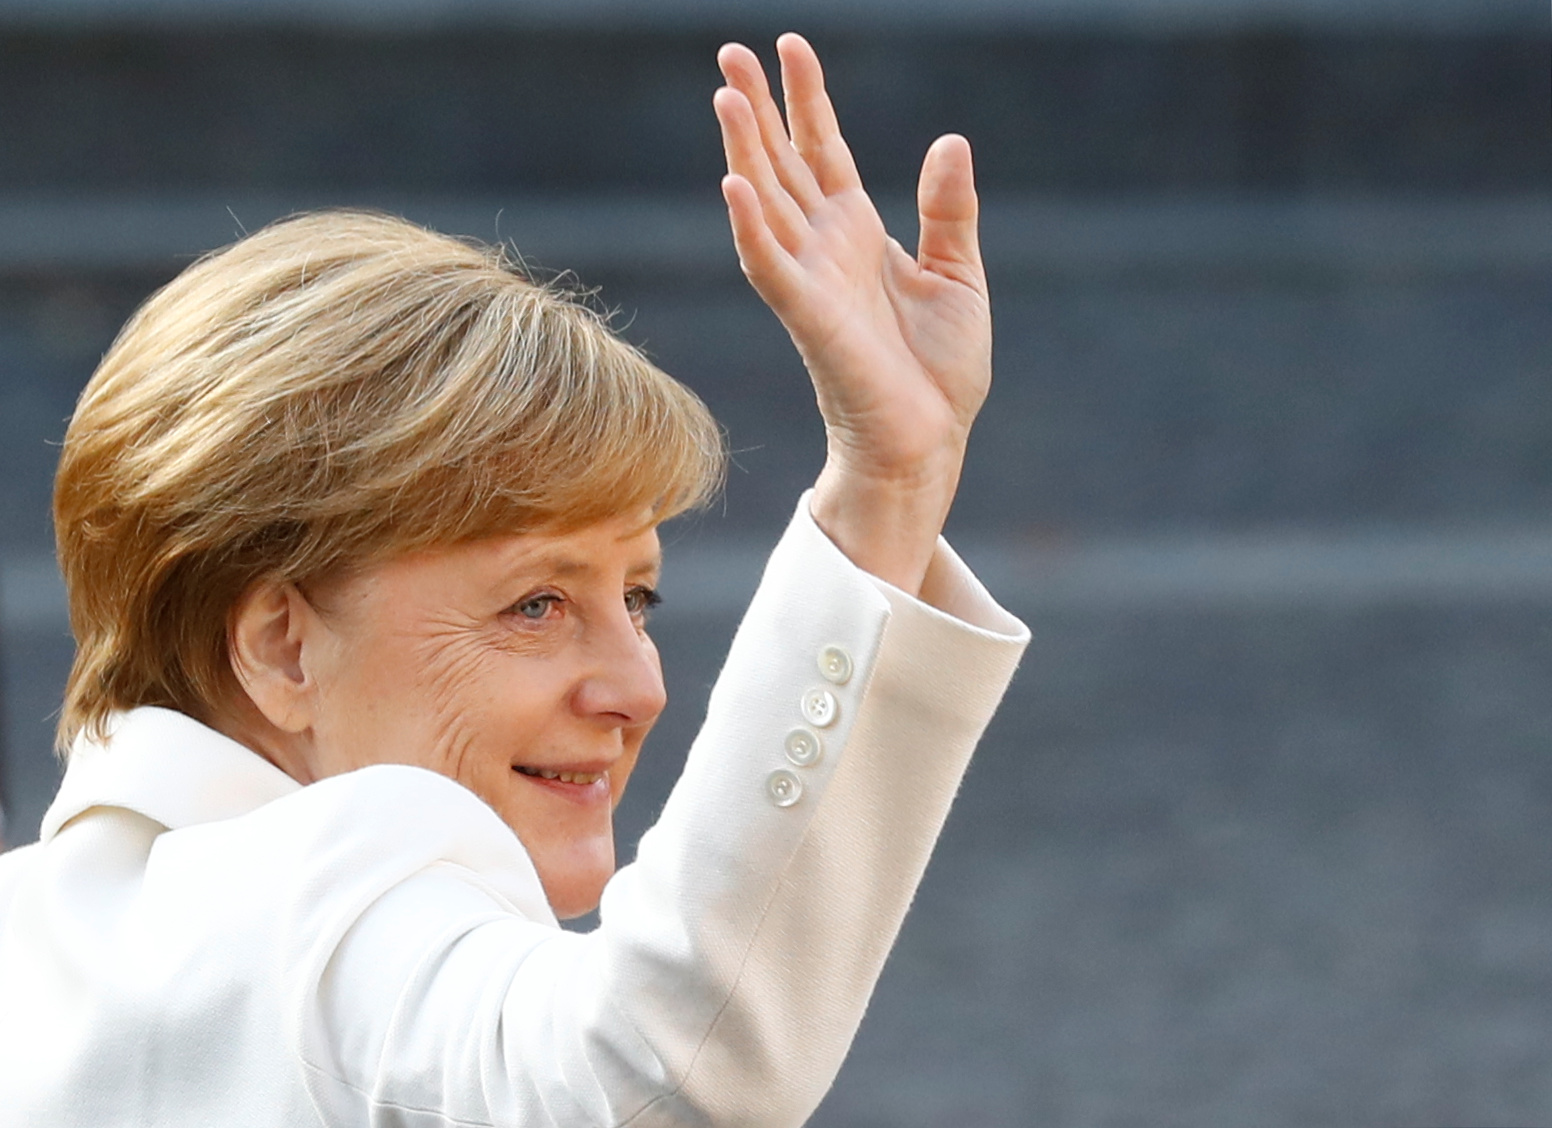 Germany's Merkel says she can work well with any successor